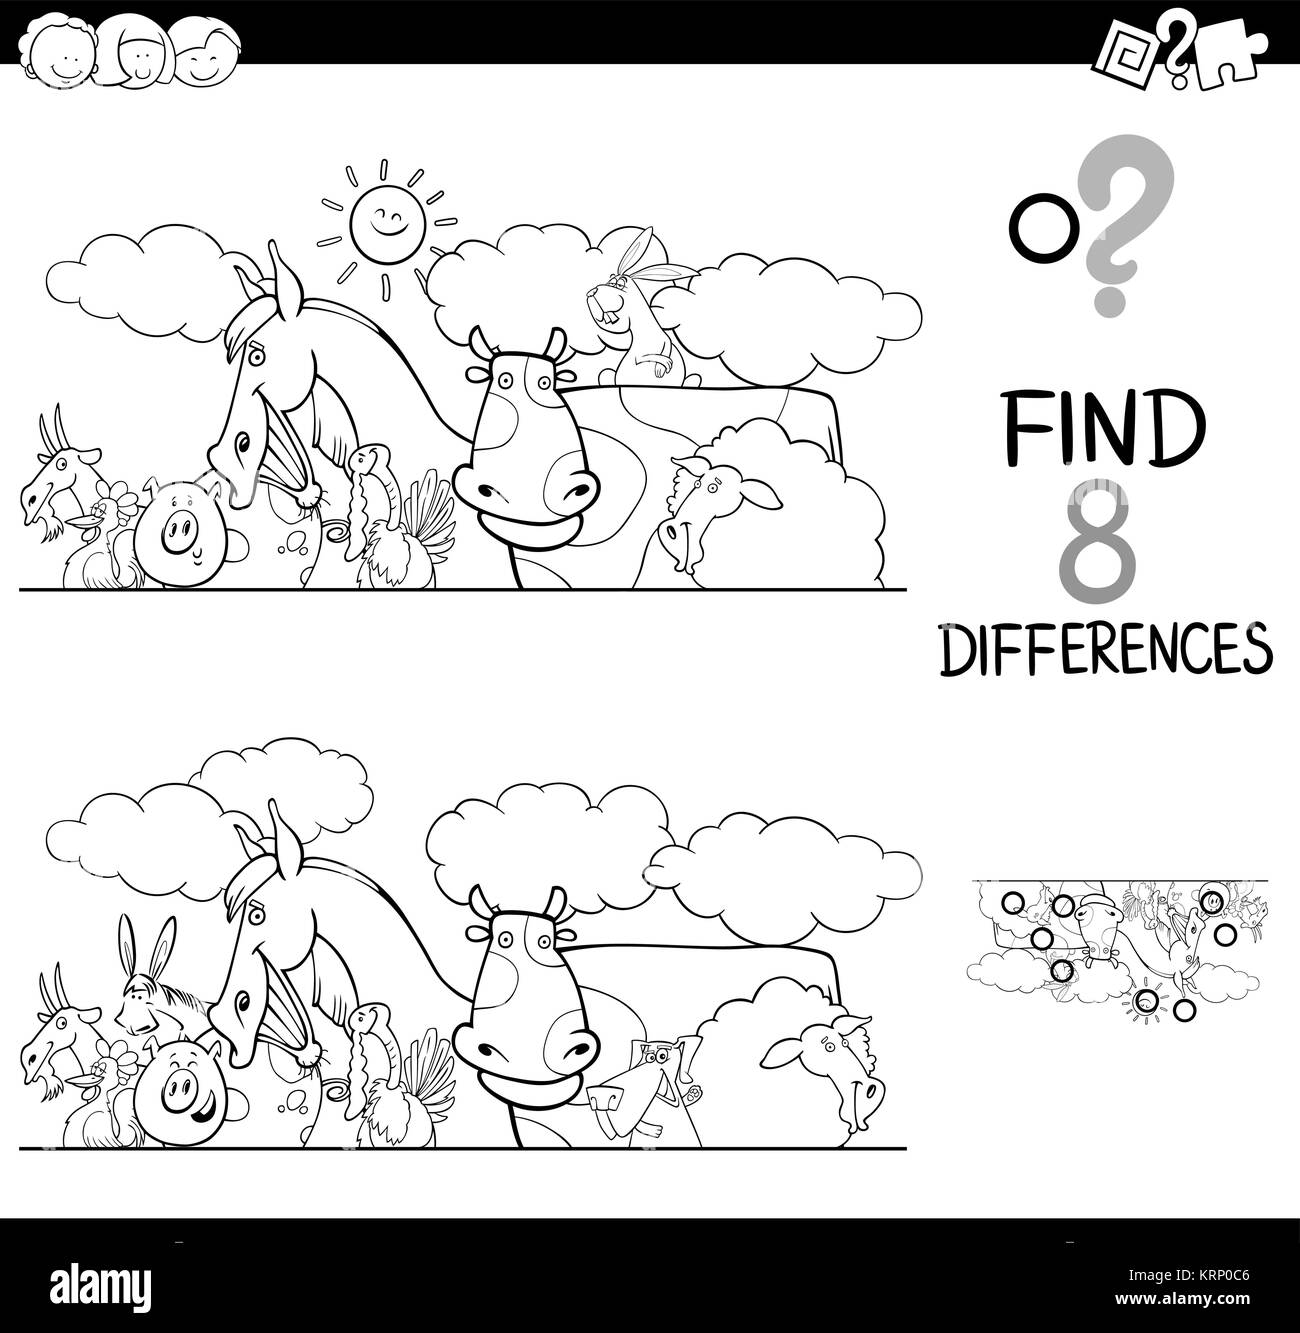 Black And White Cartoon Illustration Of Finding Eight